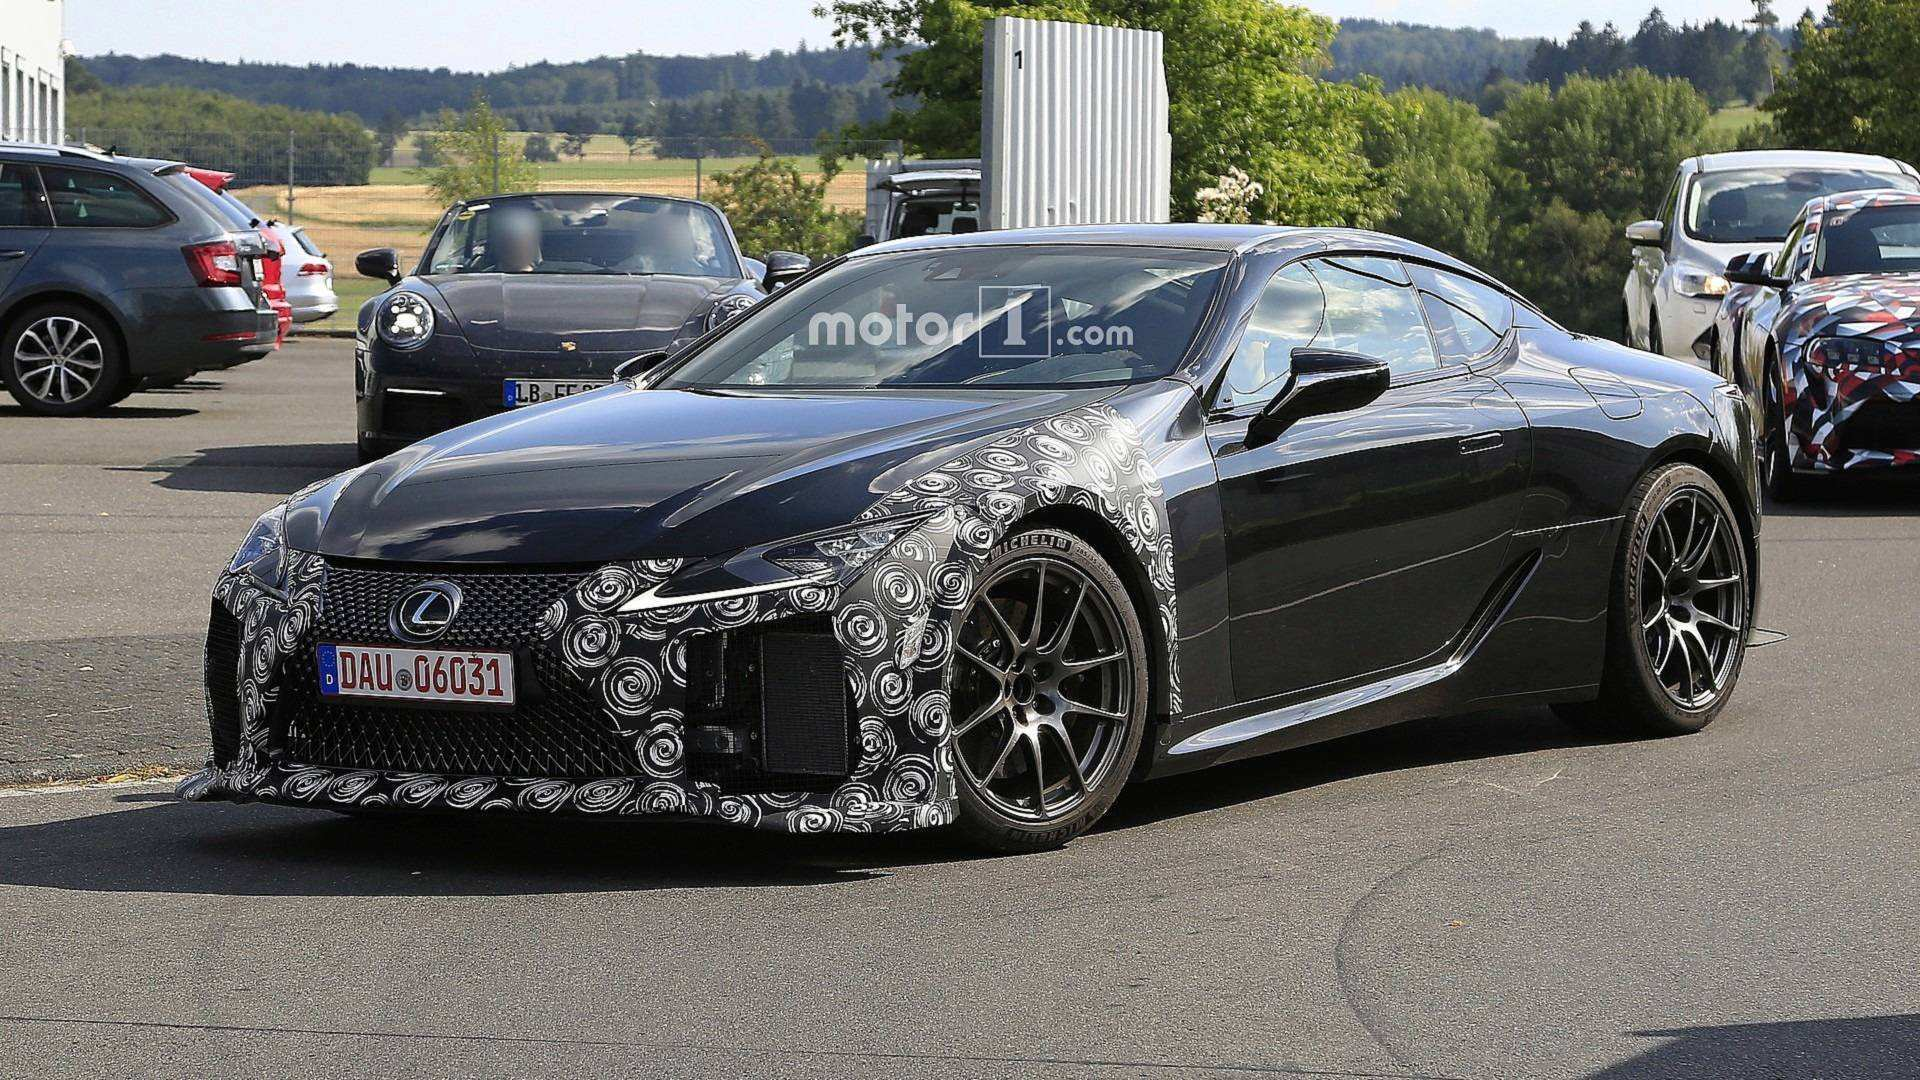 17 A 2019 Lexus Lc F Pictures